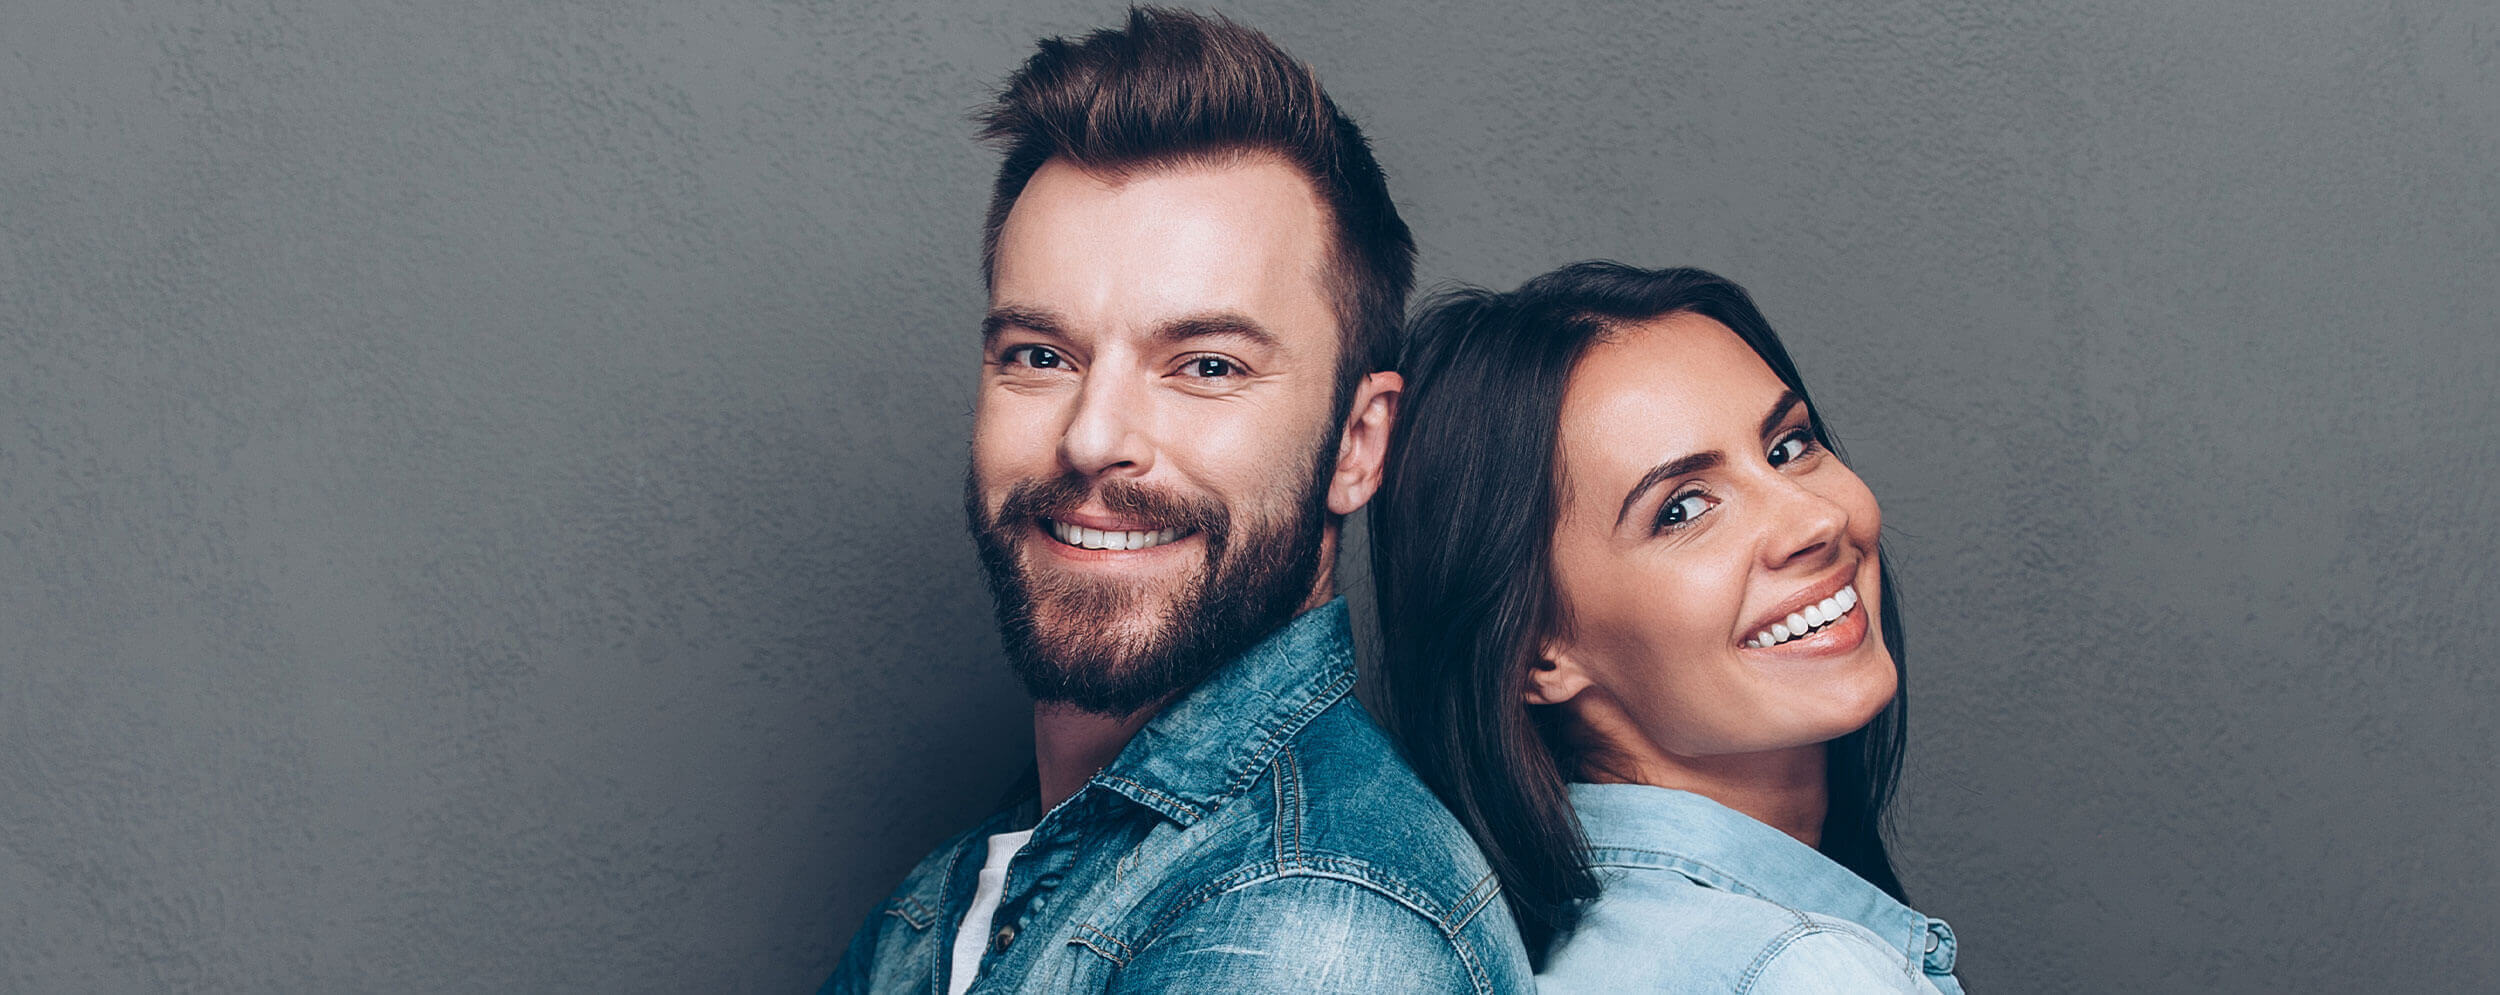 Couple smiling from cosmetic dentistry in Jonesboro